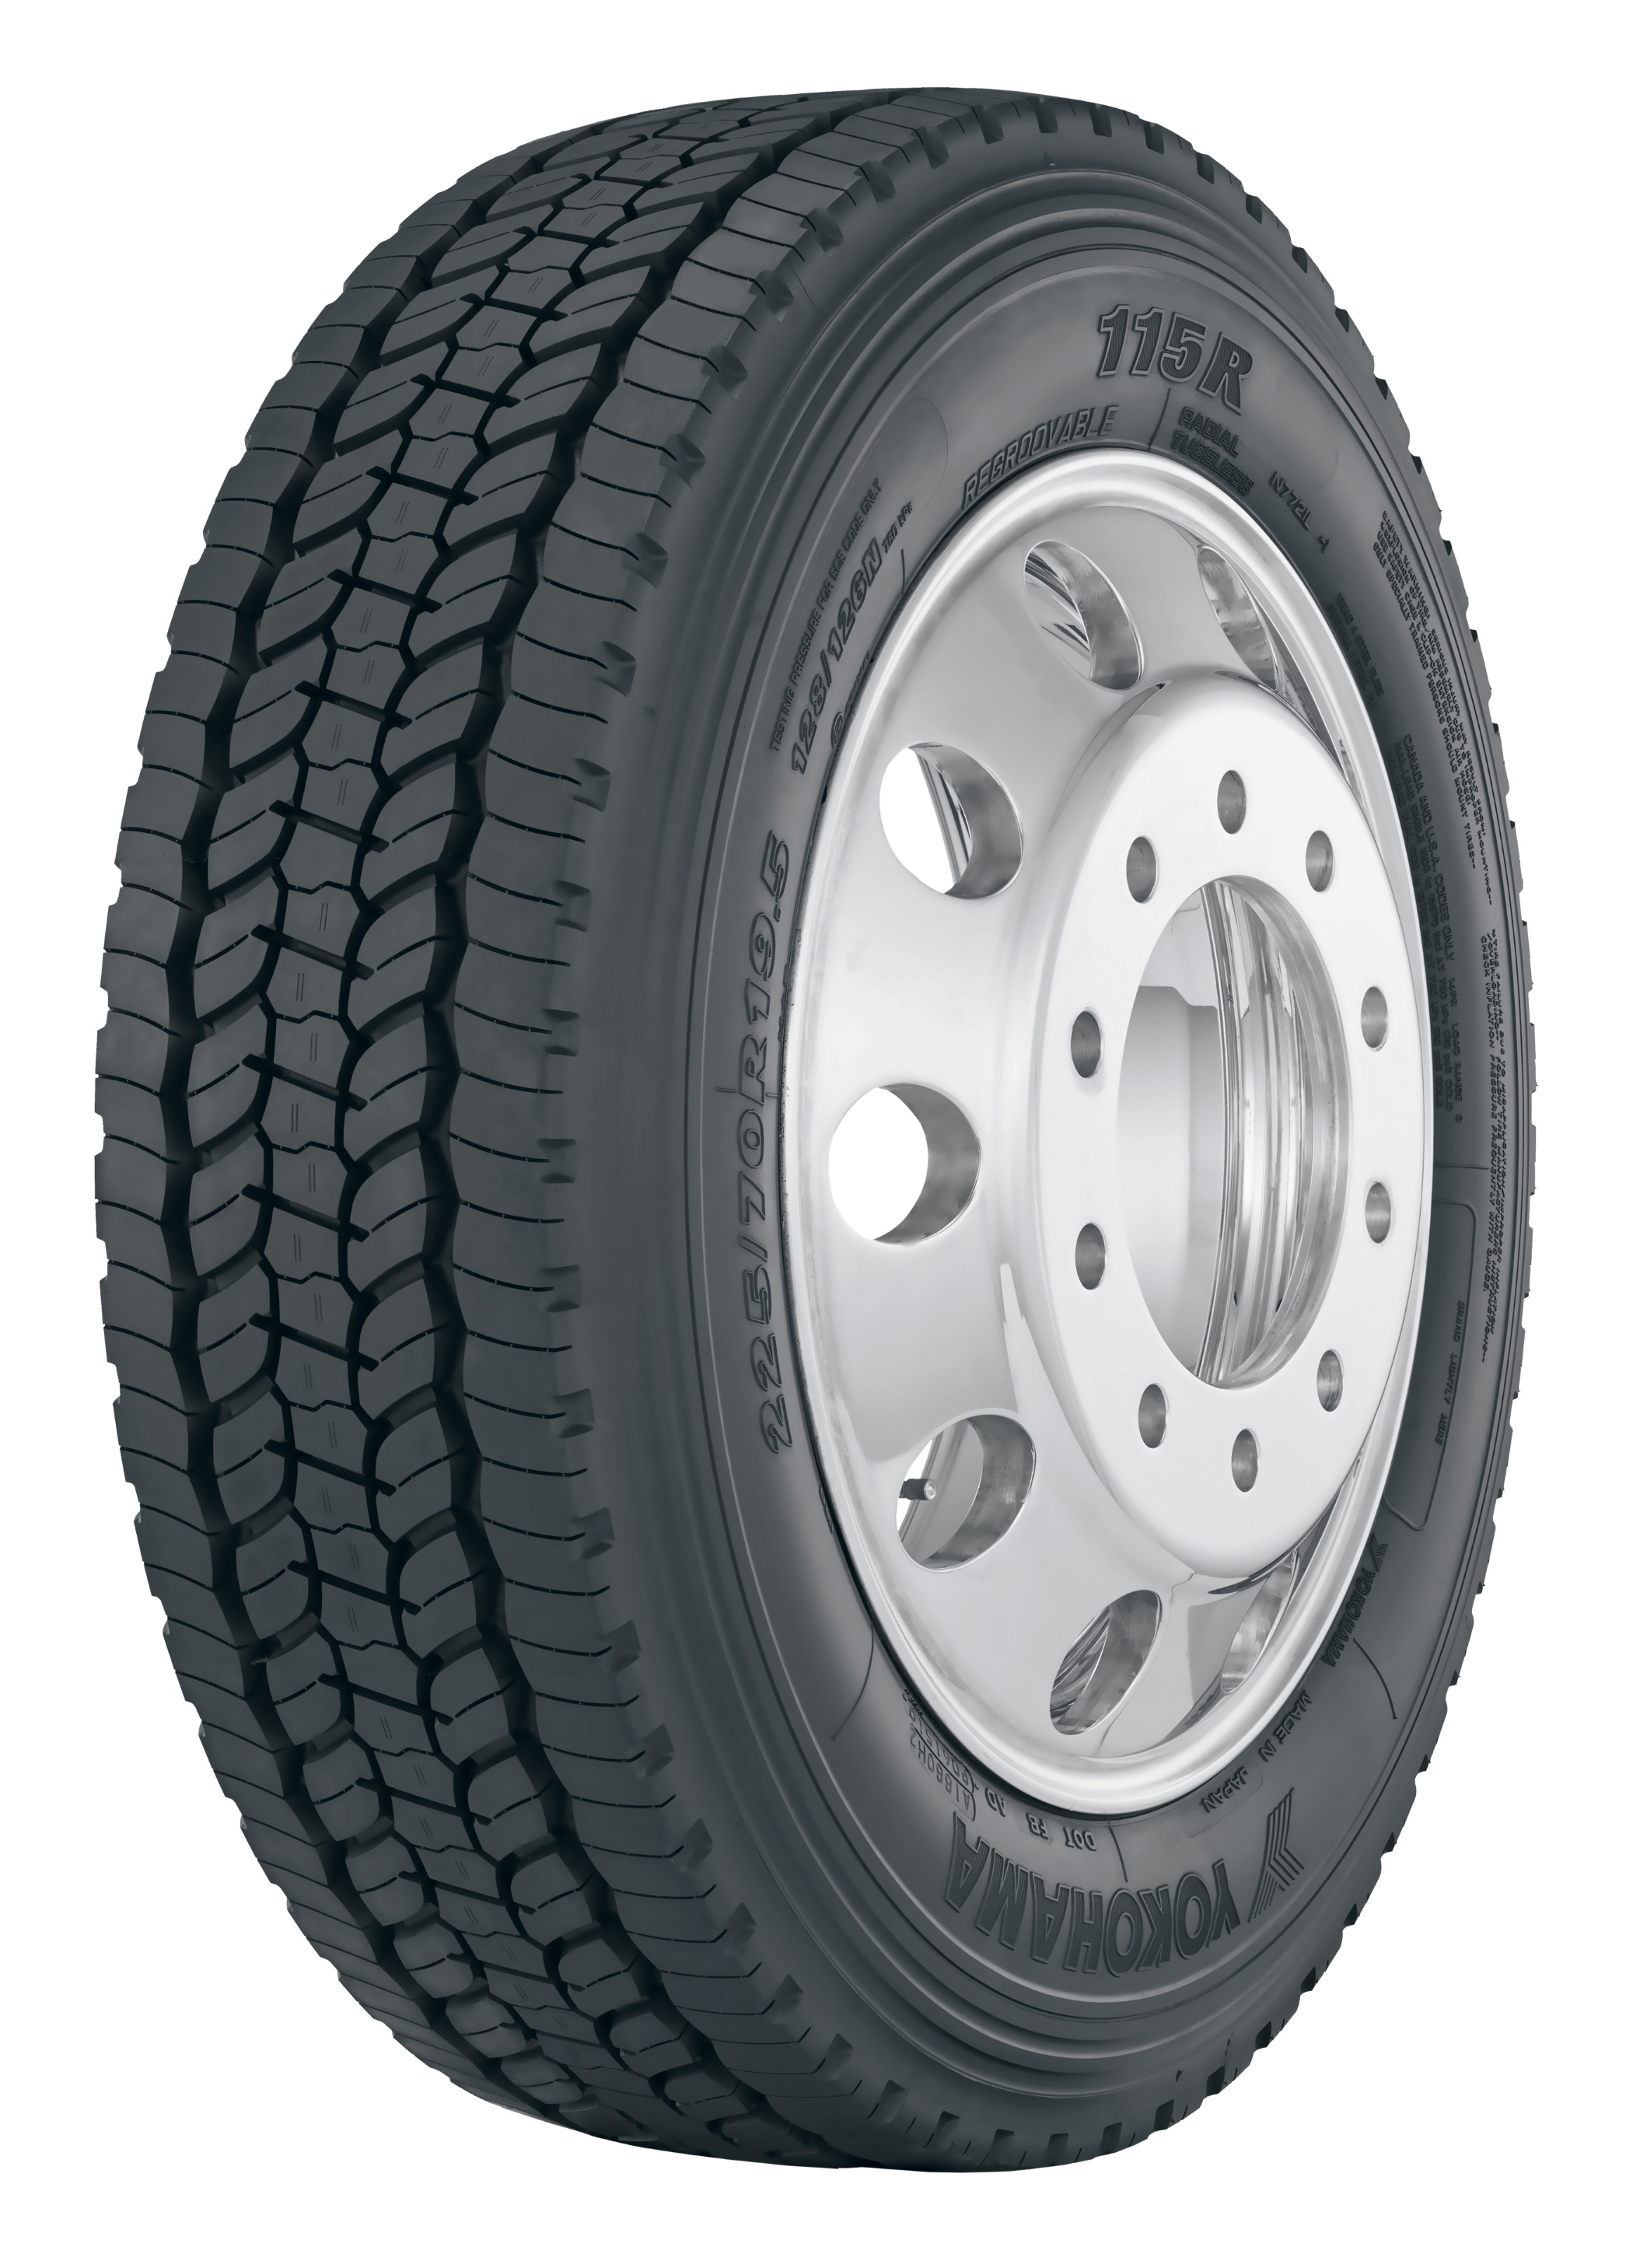 Yokohama Tire's New 115R™ All-position  Tire Delivers All-season Performance